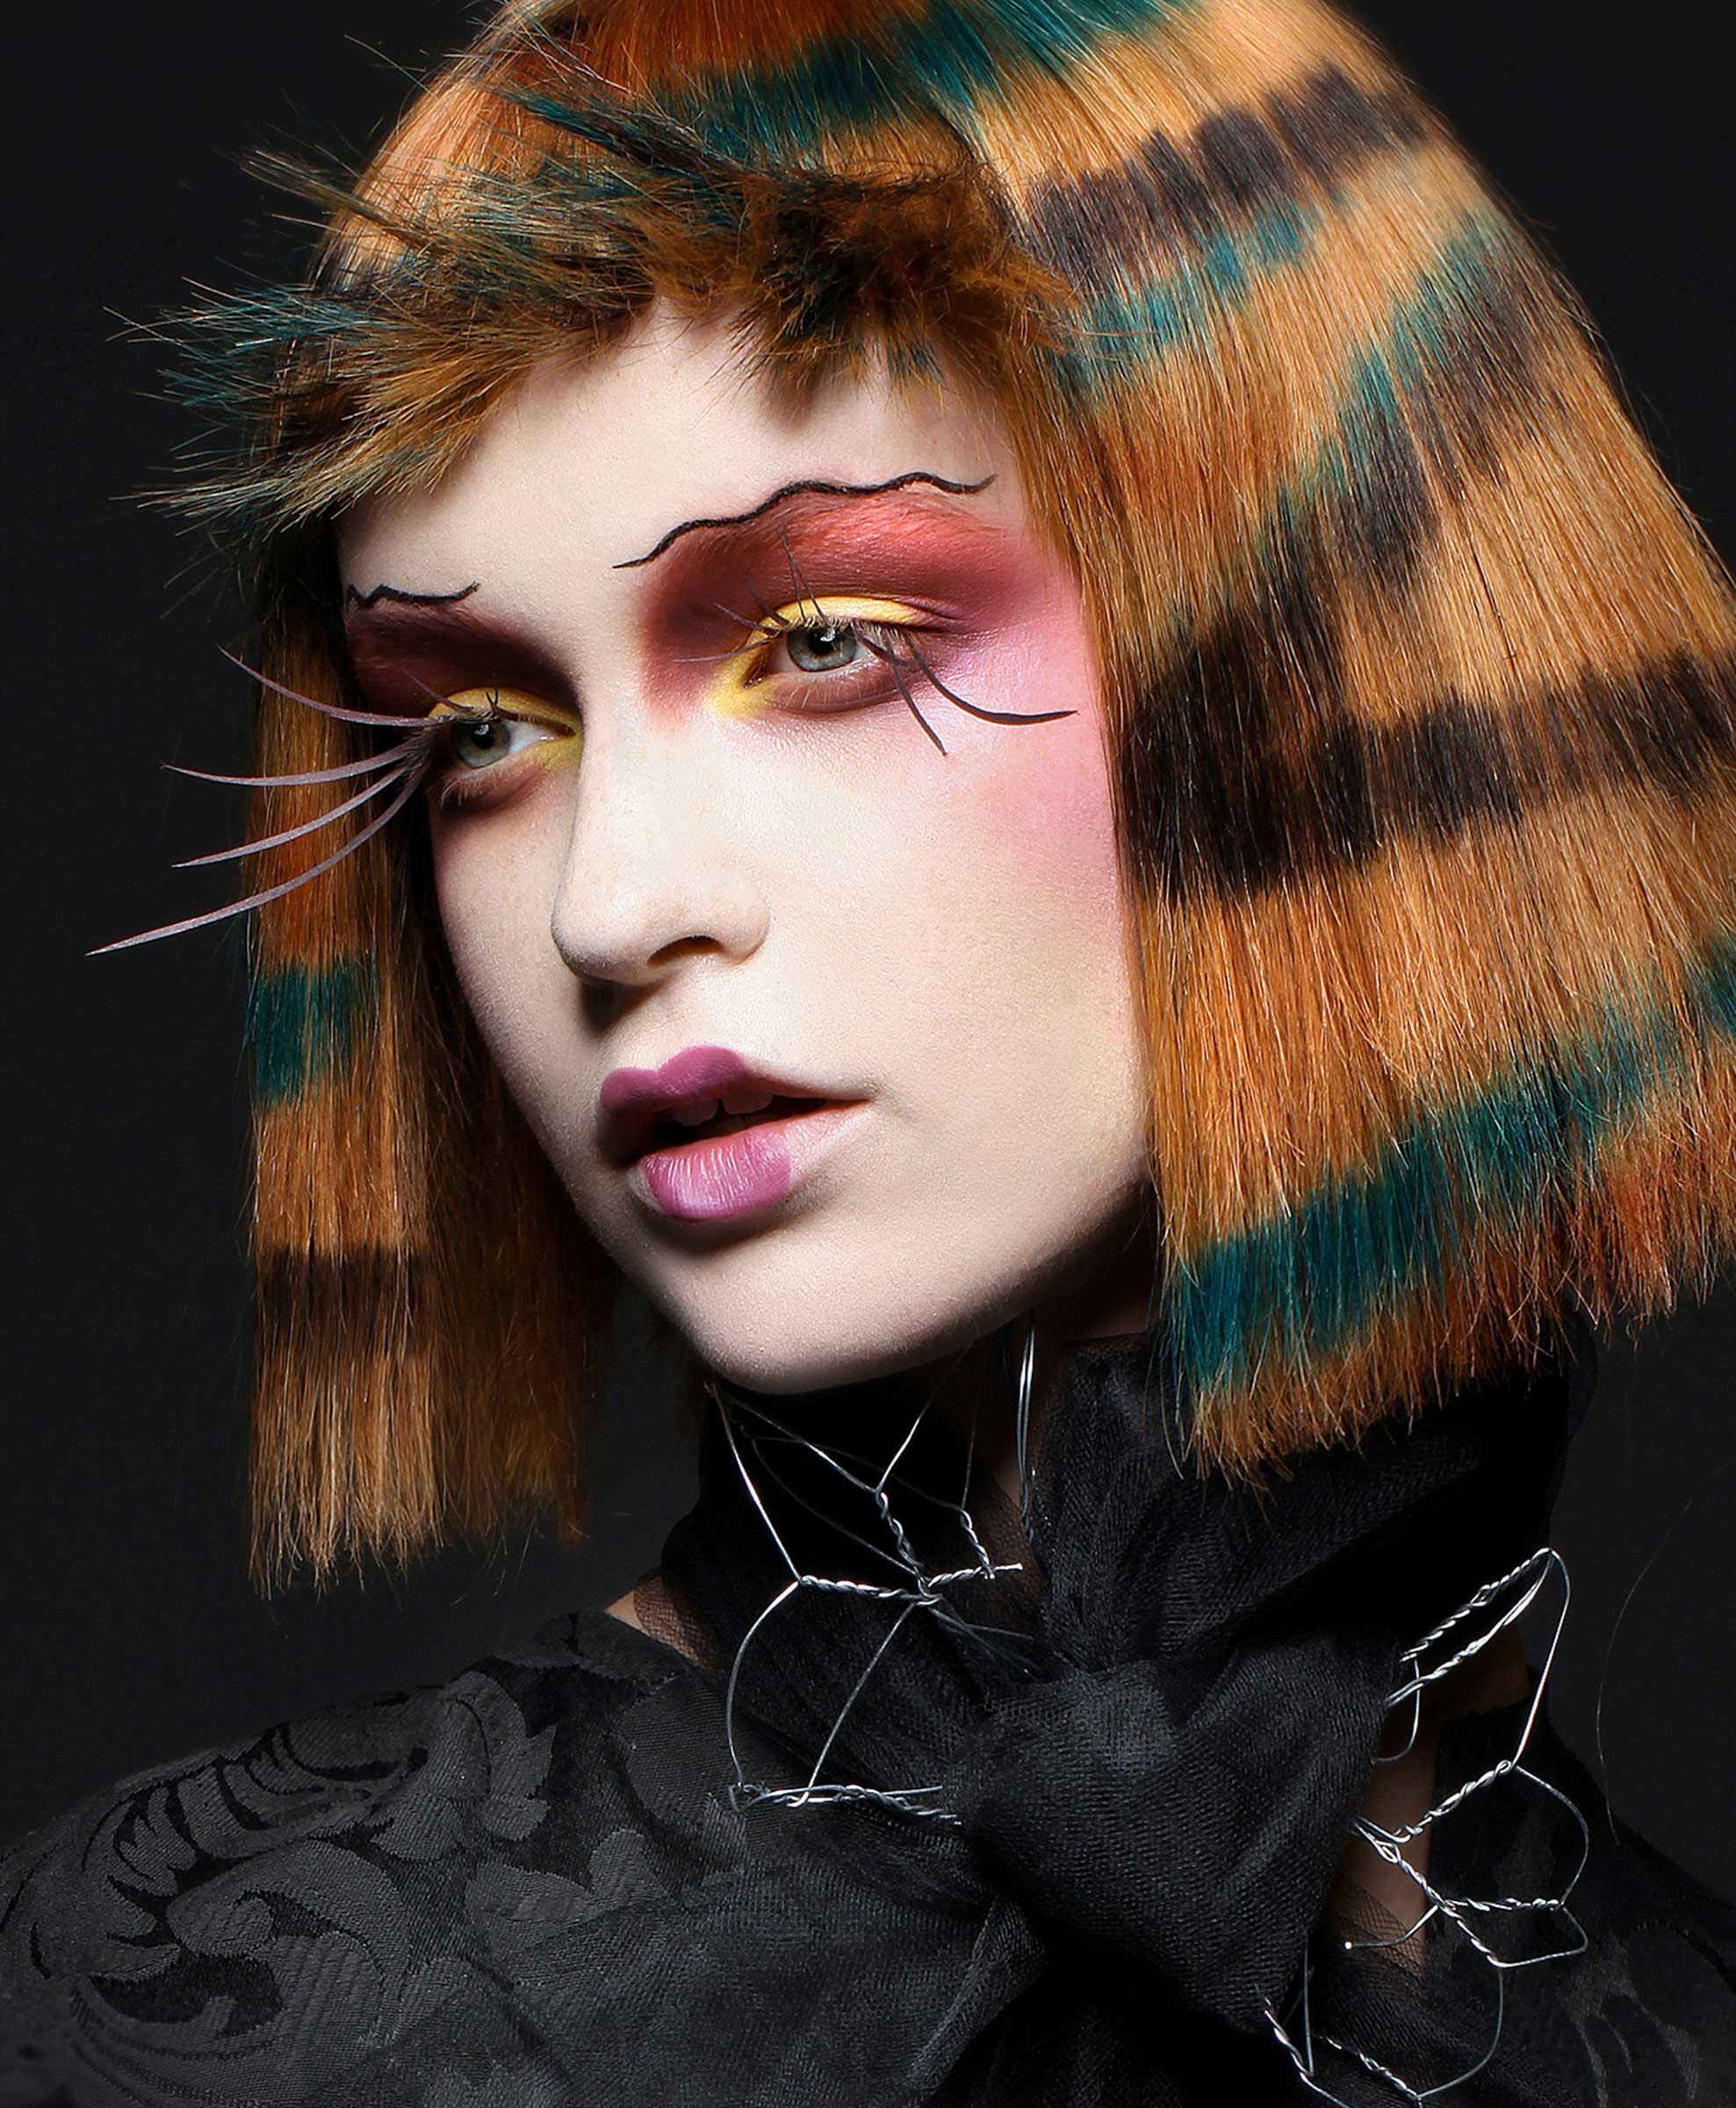 naha-2019-winner-julie-vriesinga-paula-tizzard-hair-fashion-mua-photographers-toronto-london-ontario